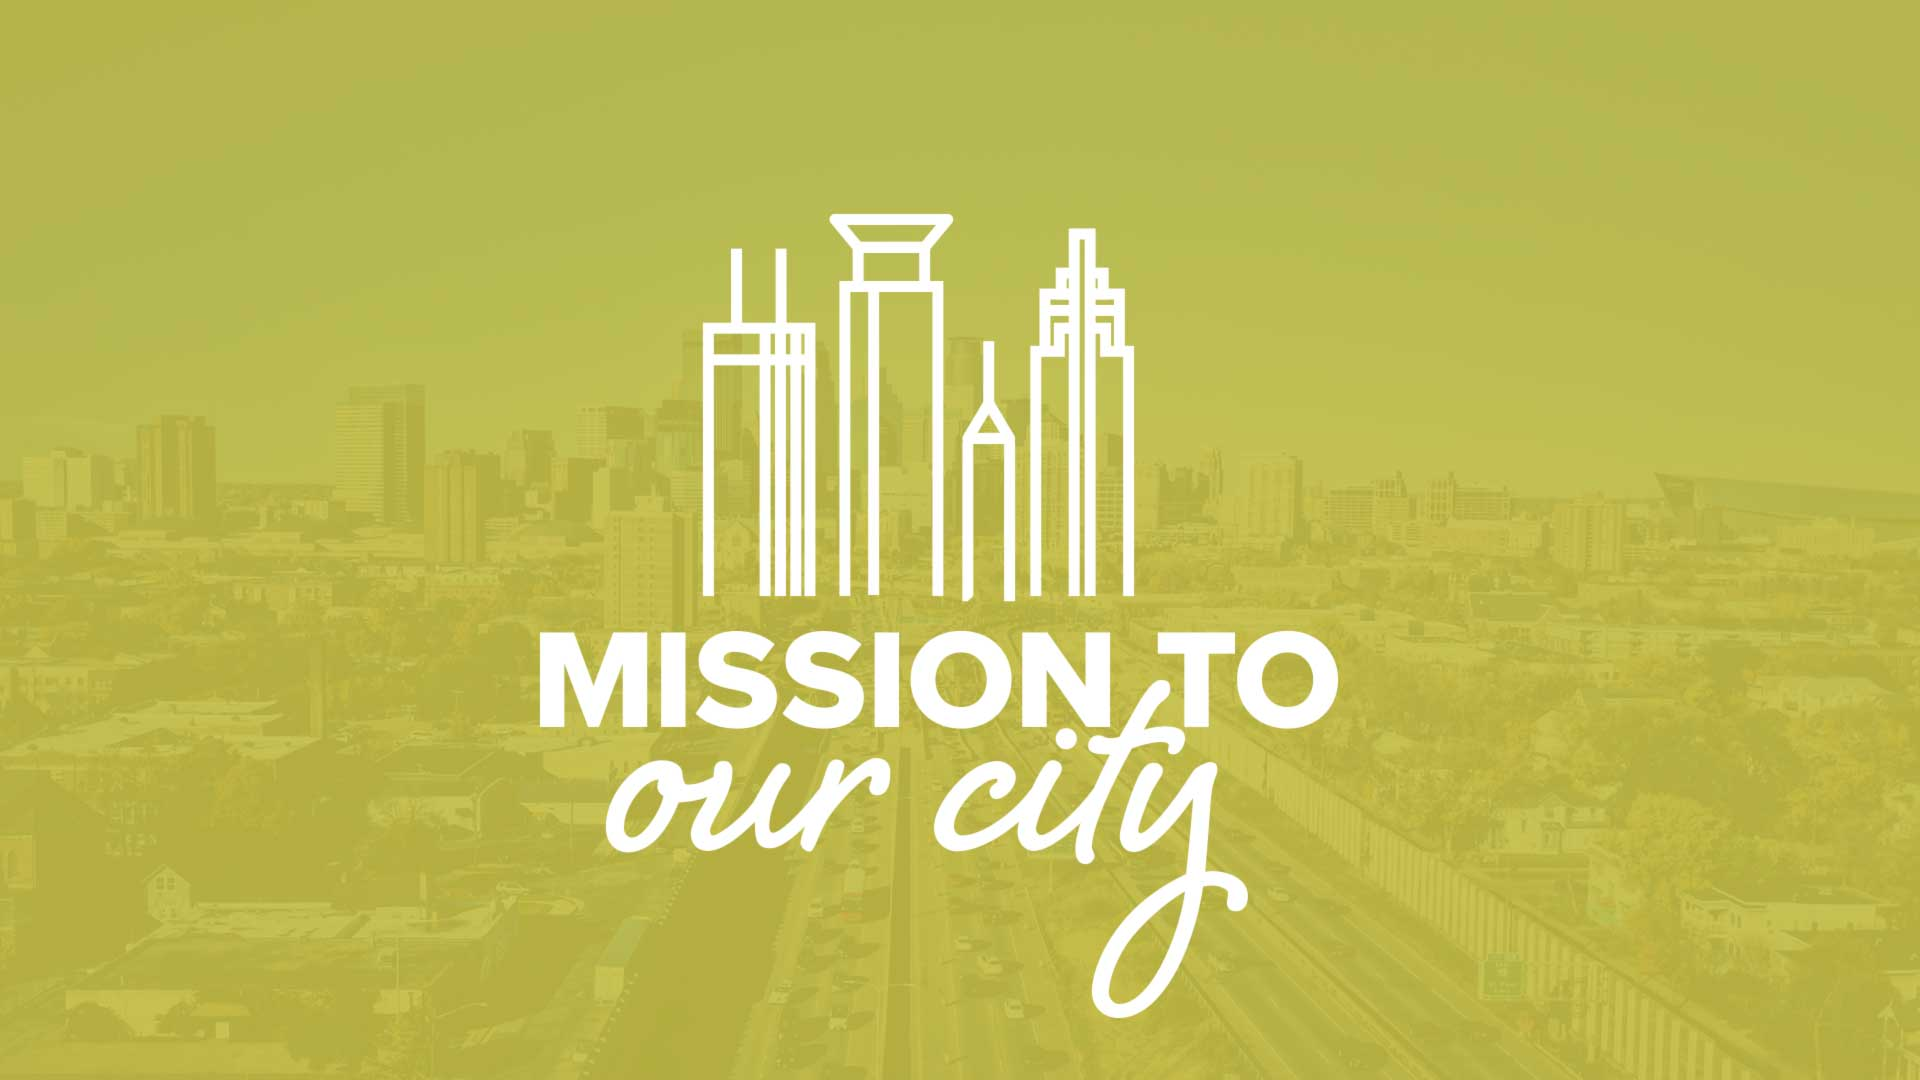 Mission to our city app wide